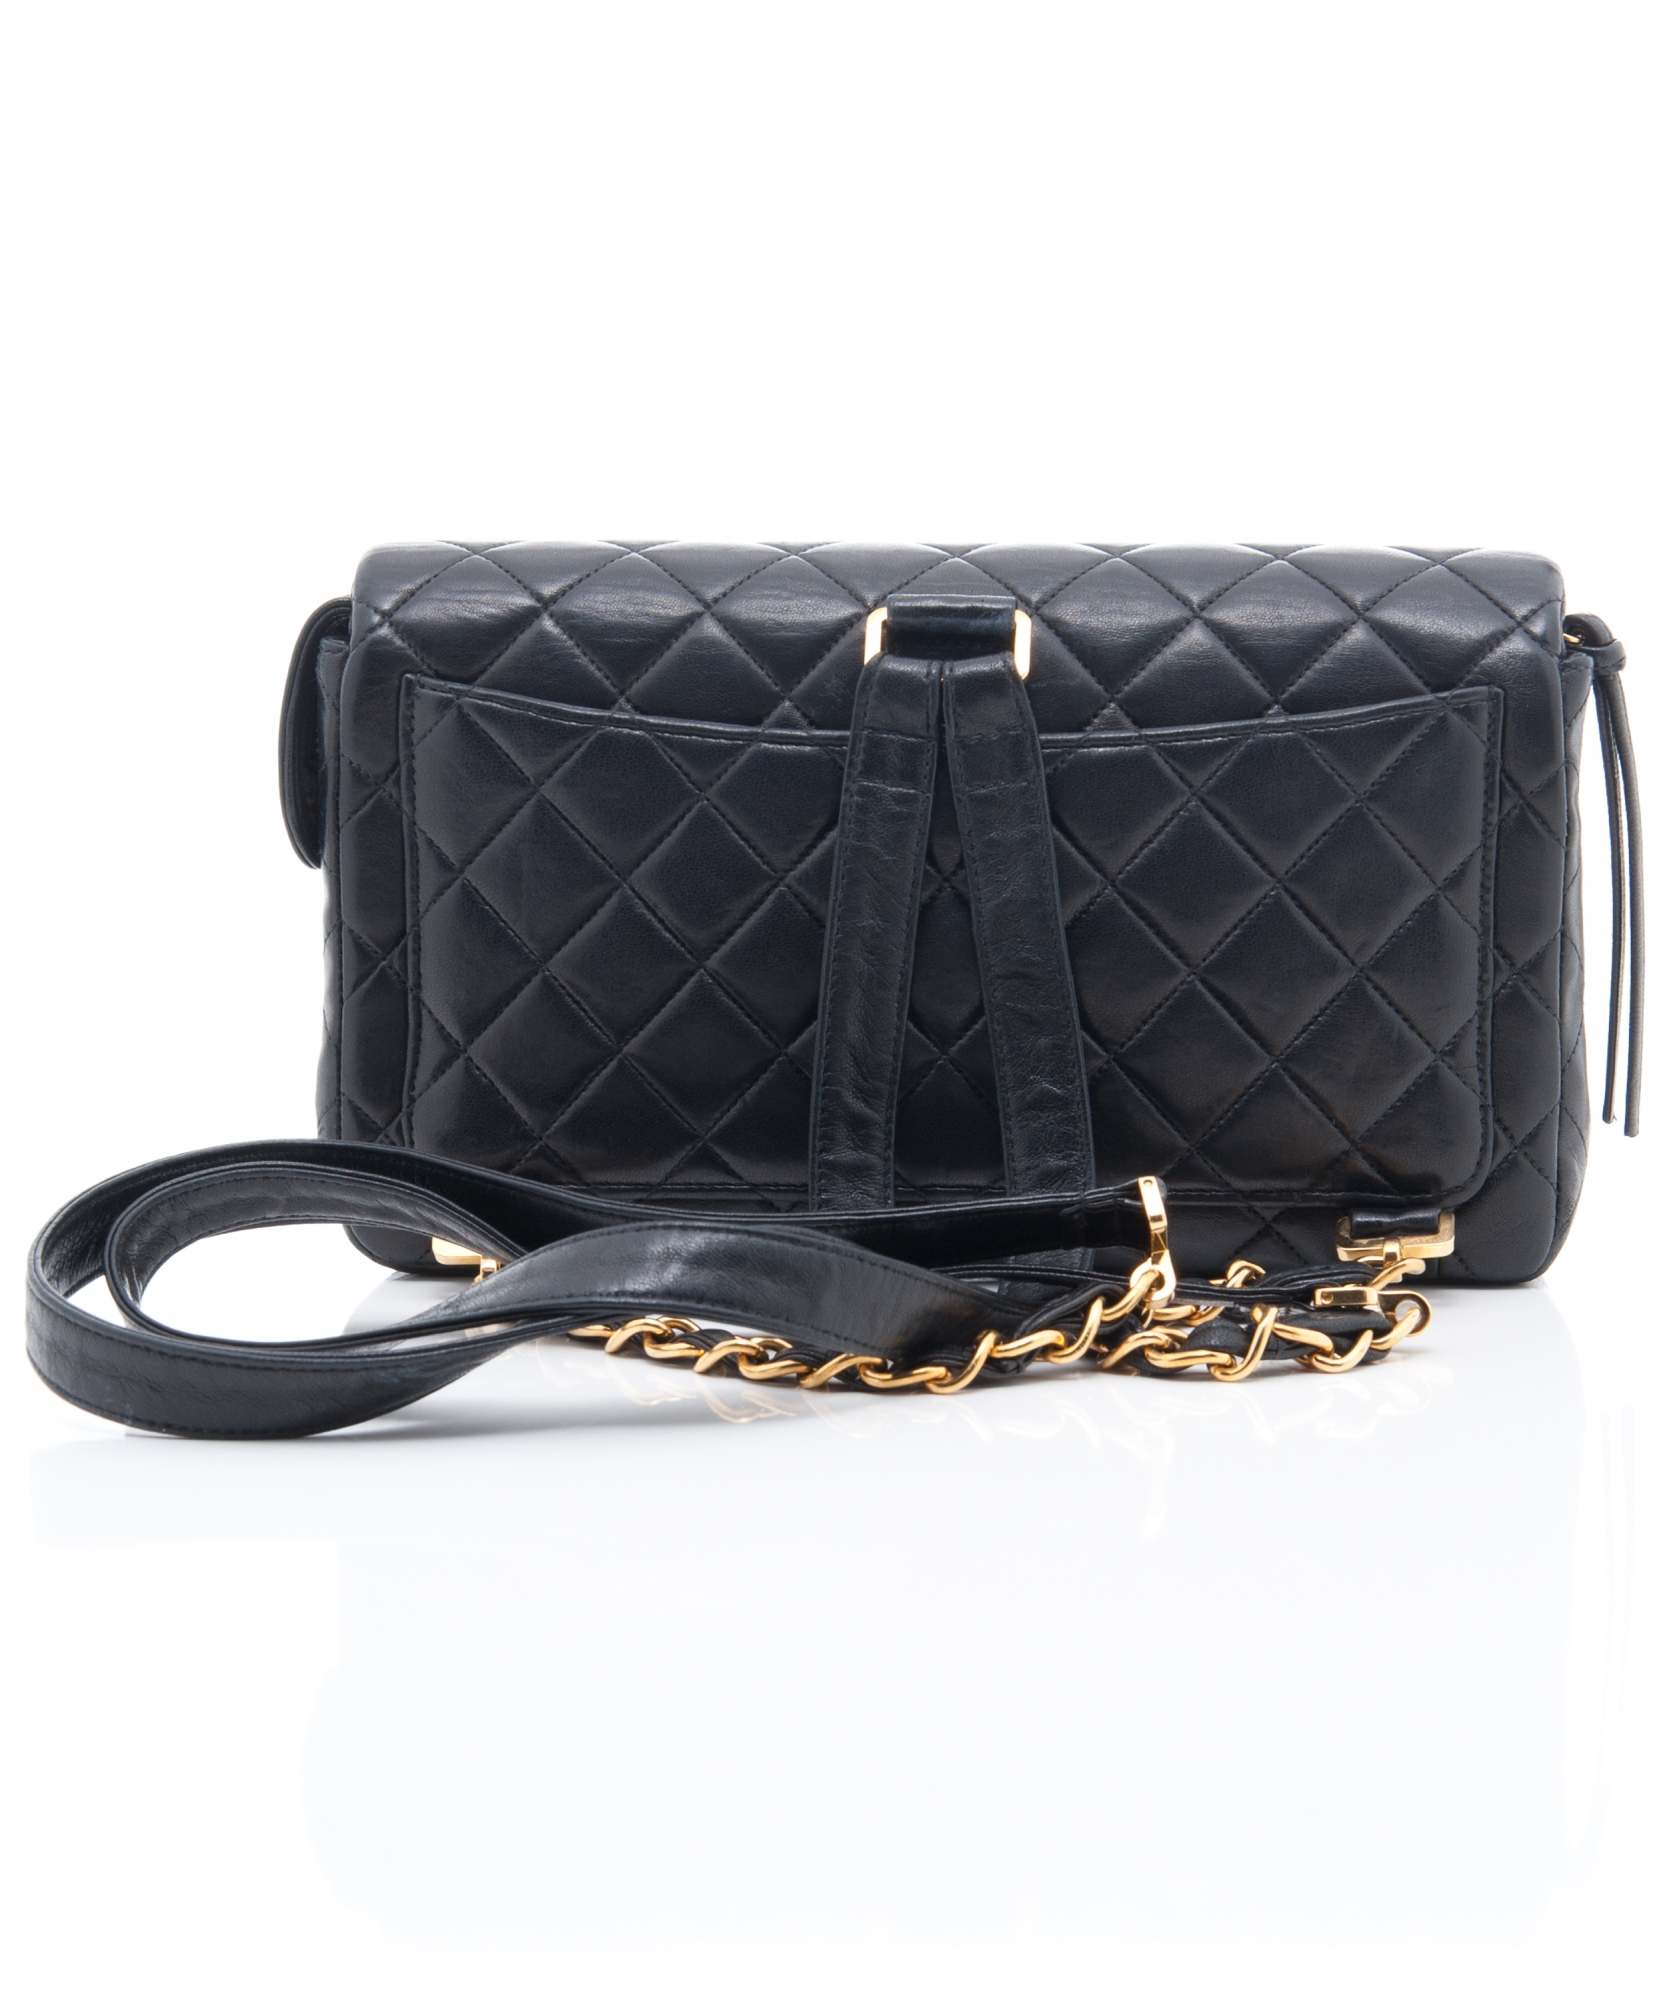 8d8a0e5ea6d4 Chanel Blue Quilted Lambskin Backpack | La Doyenne